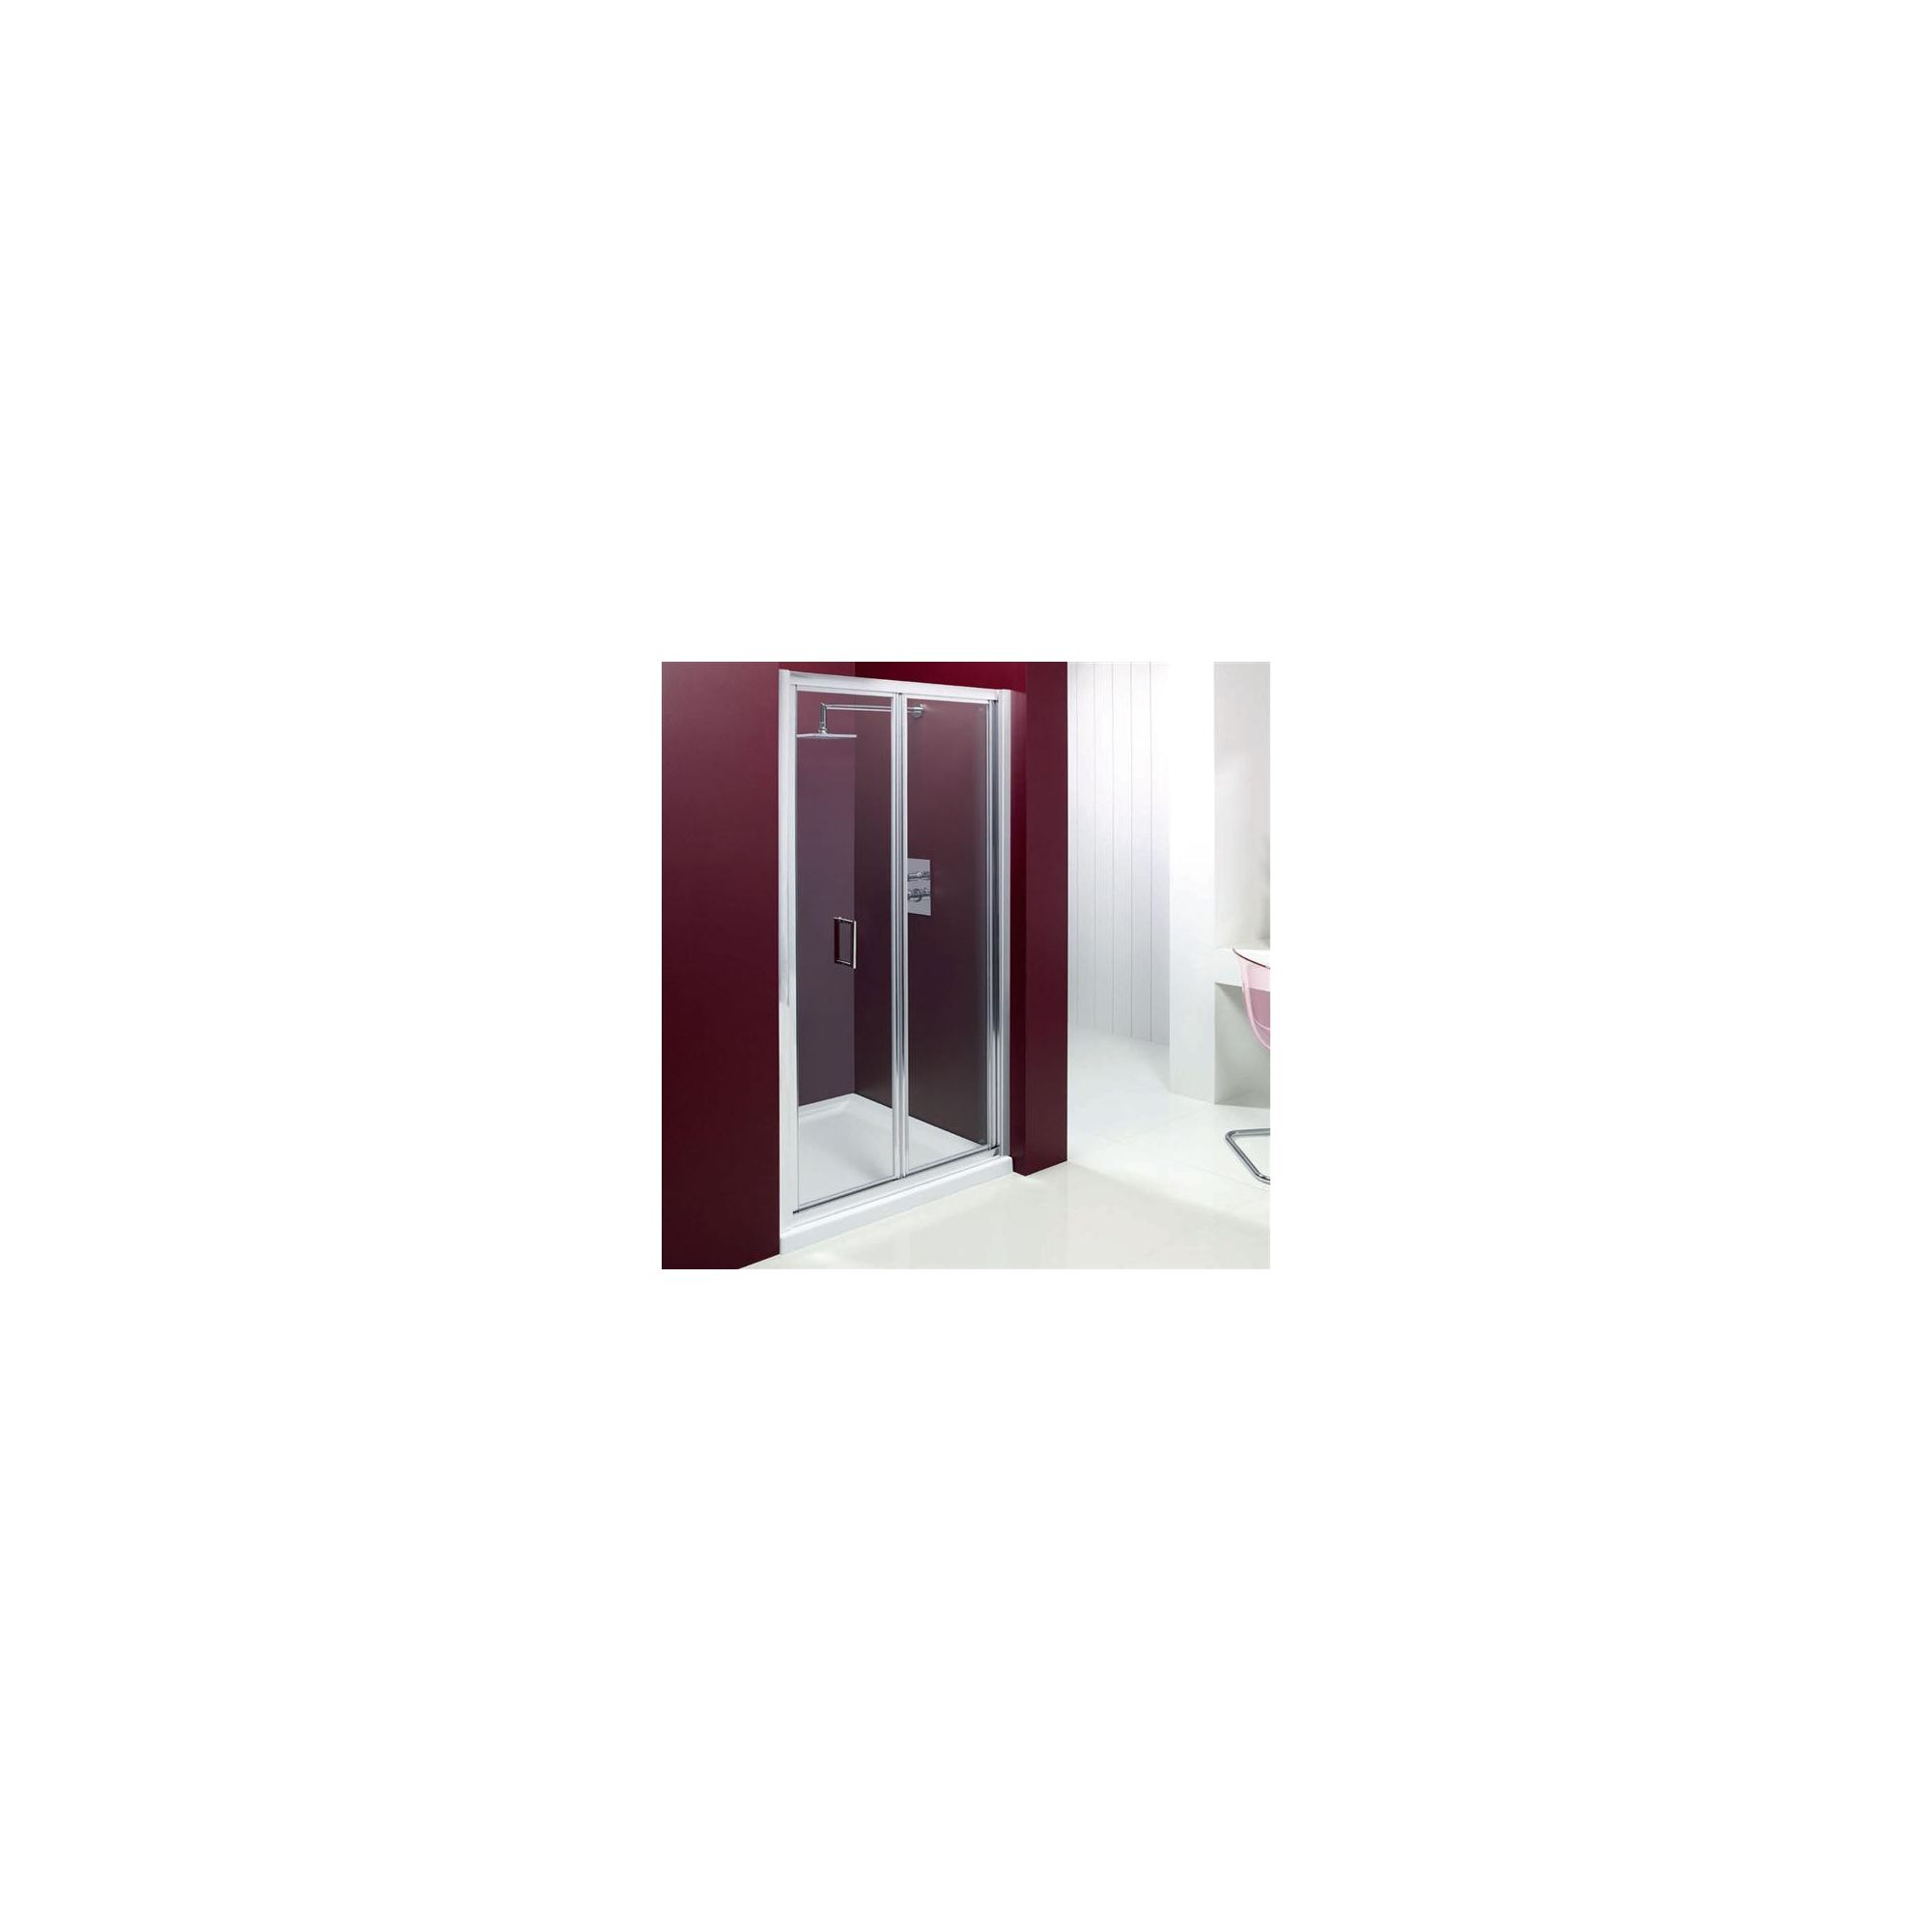 Merlyn Vivid Entree Bi-Fold Door Alcove Shower Enclosure, 900mm x 900mm, Low Profile Tray, 6mm Glass at Tesco Direct